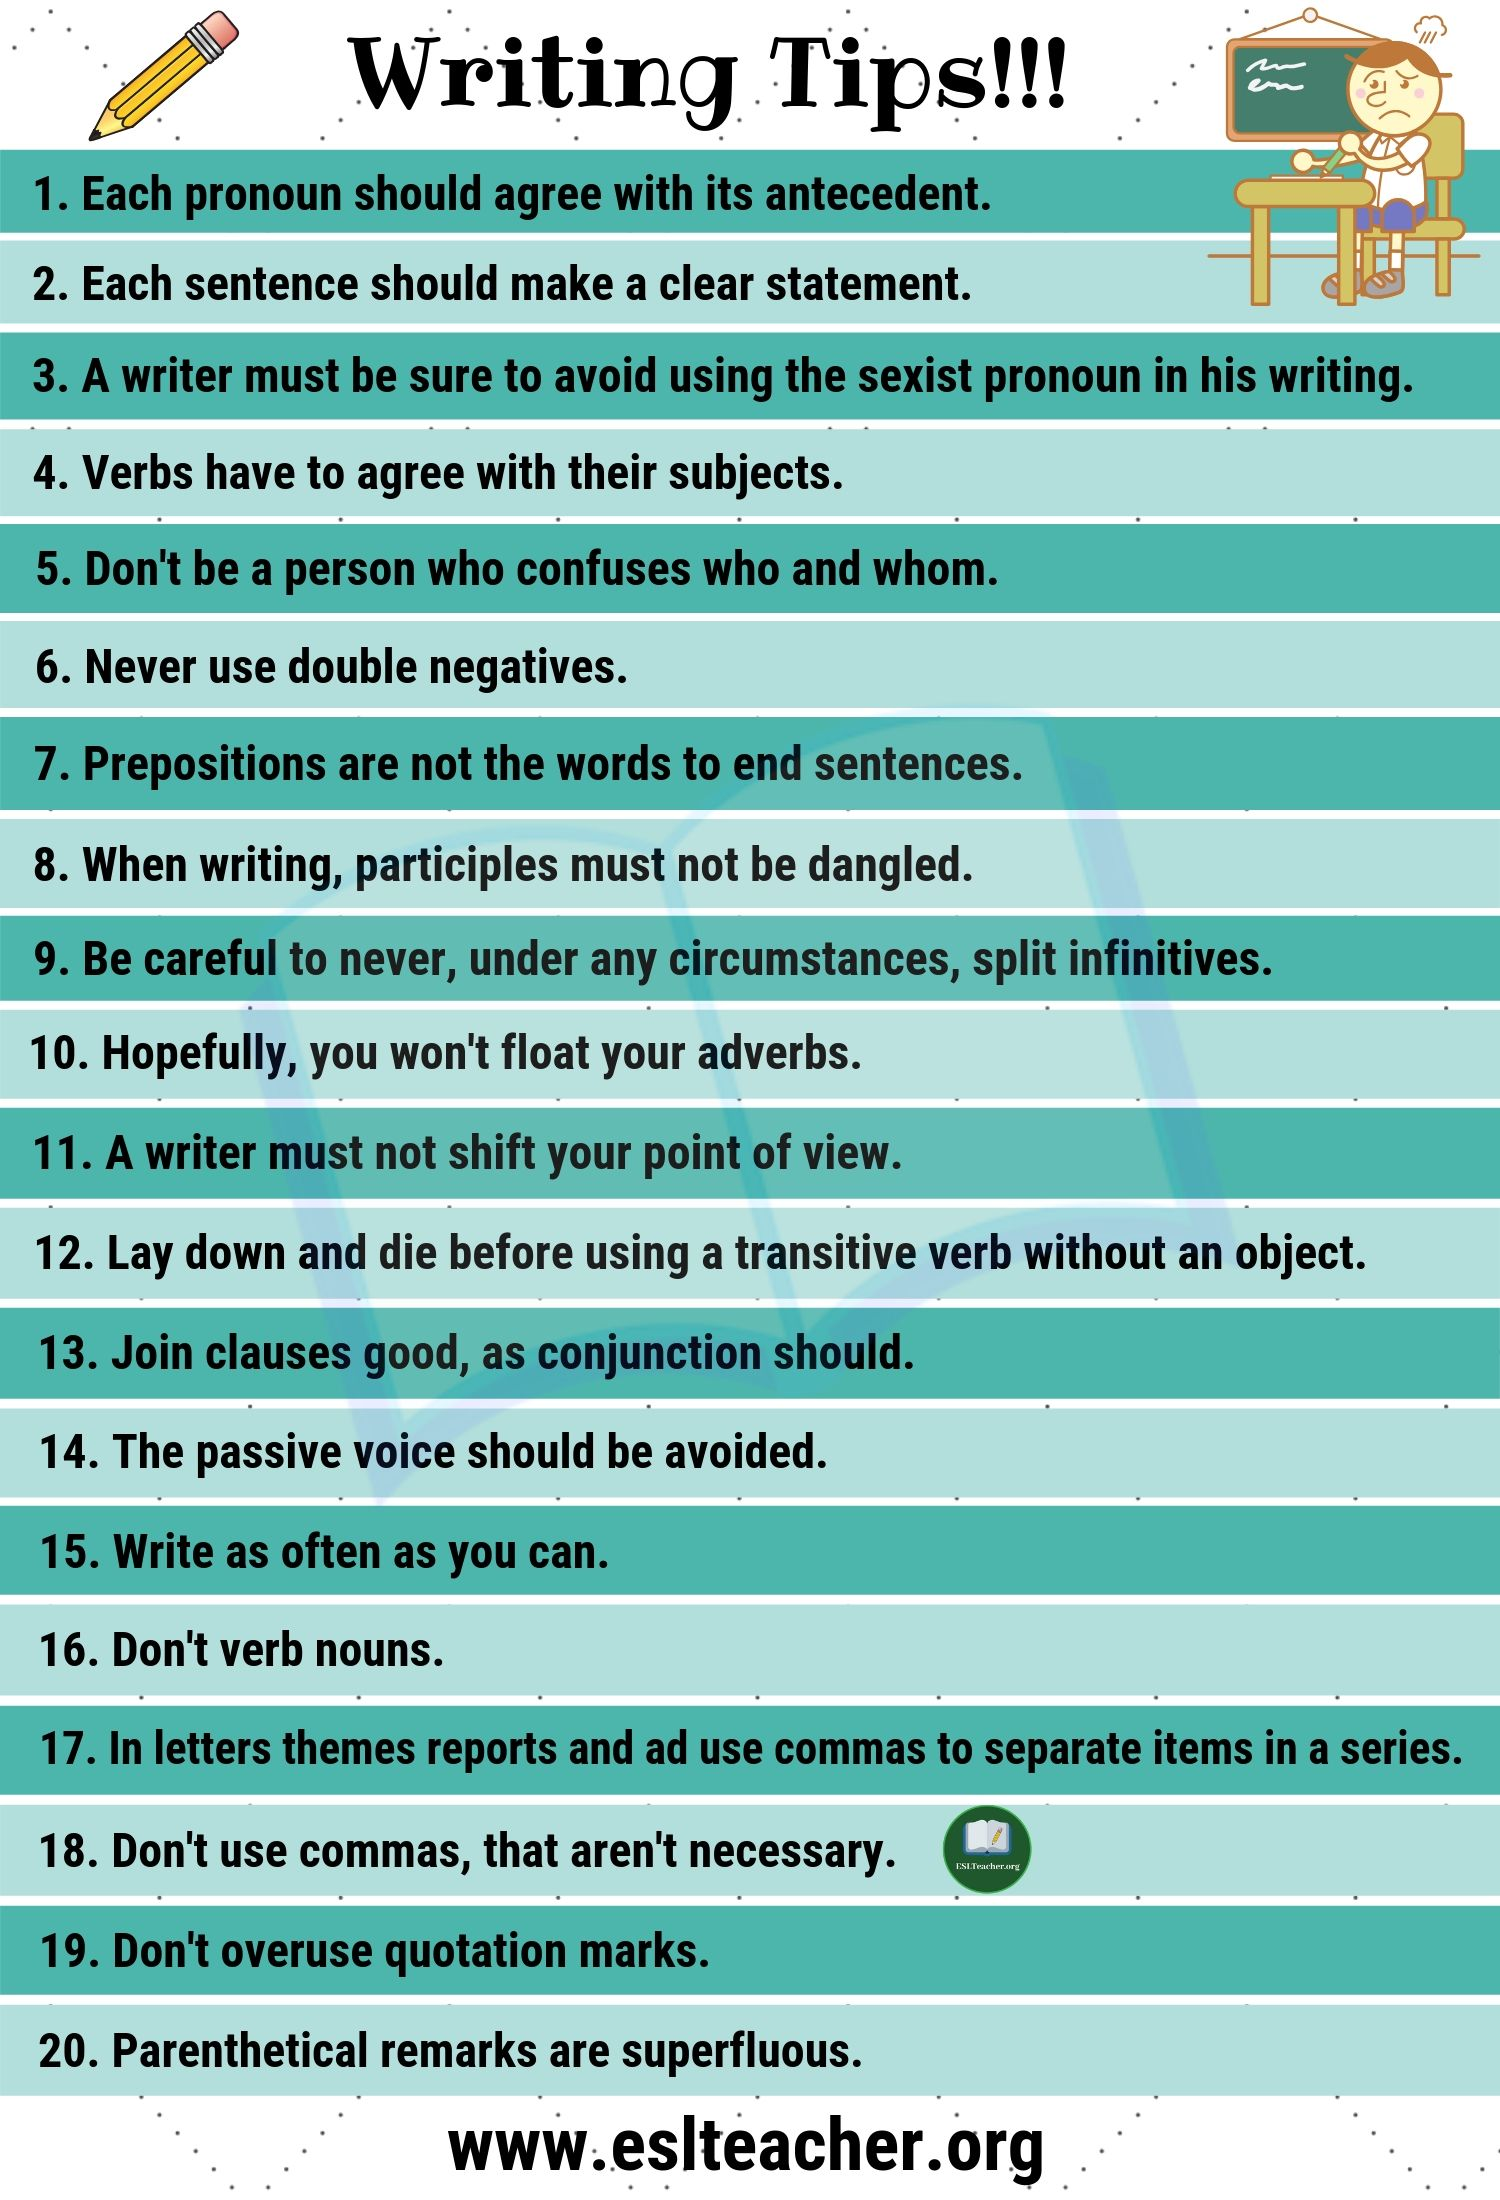 Writing Tips - How to Write Better